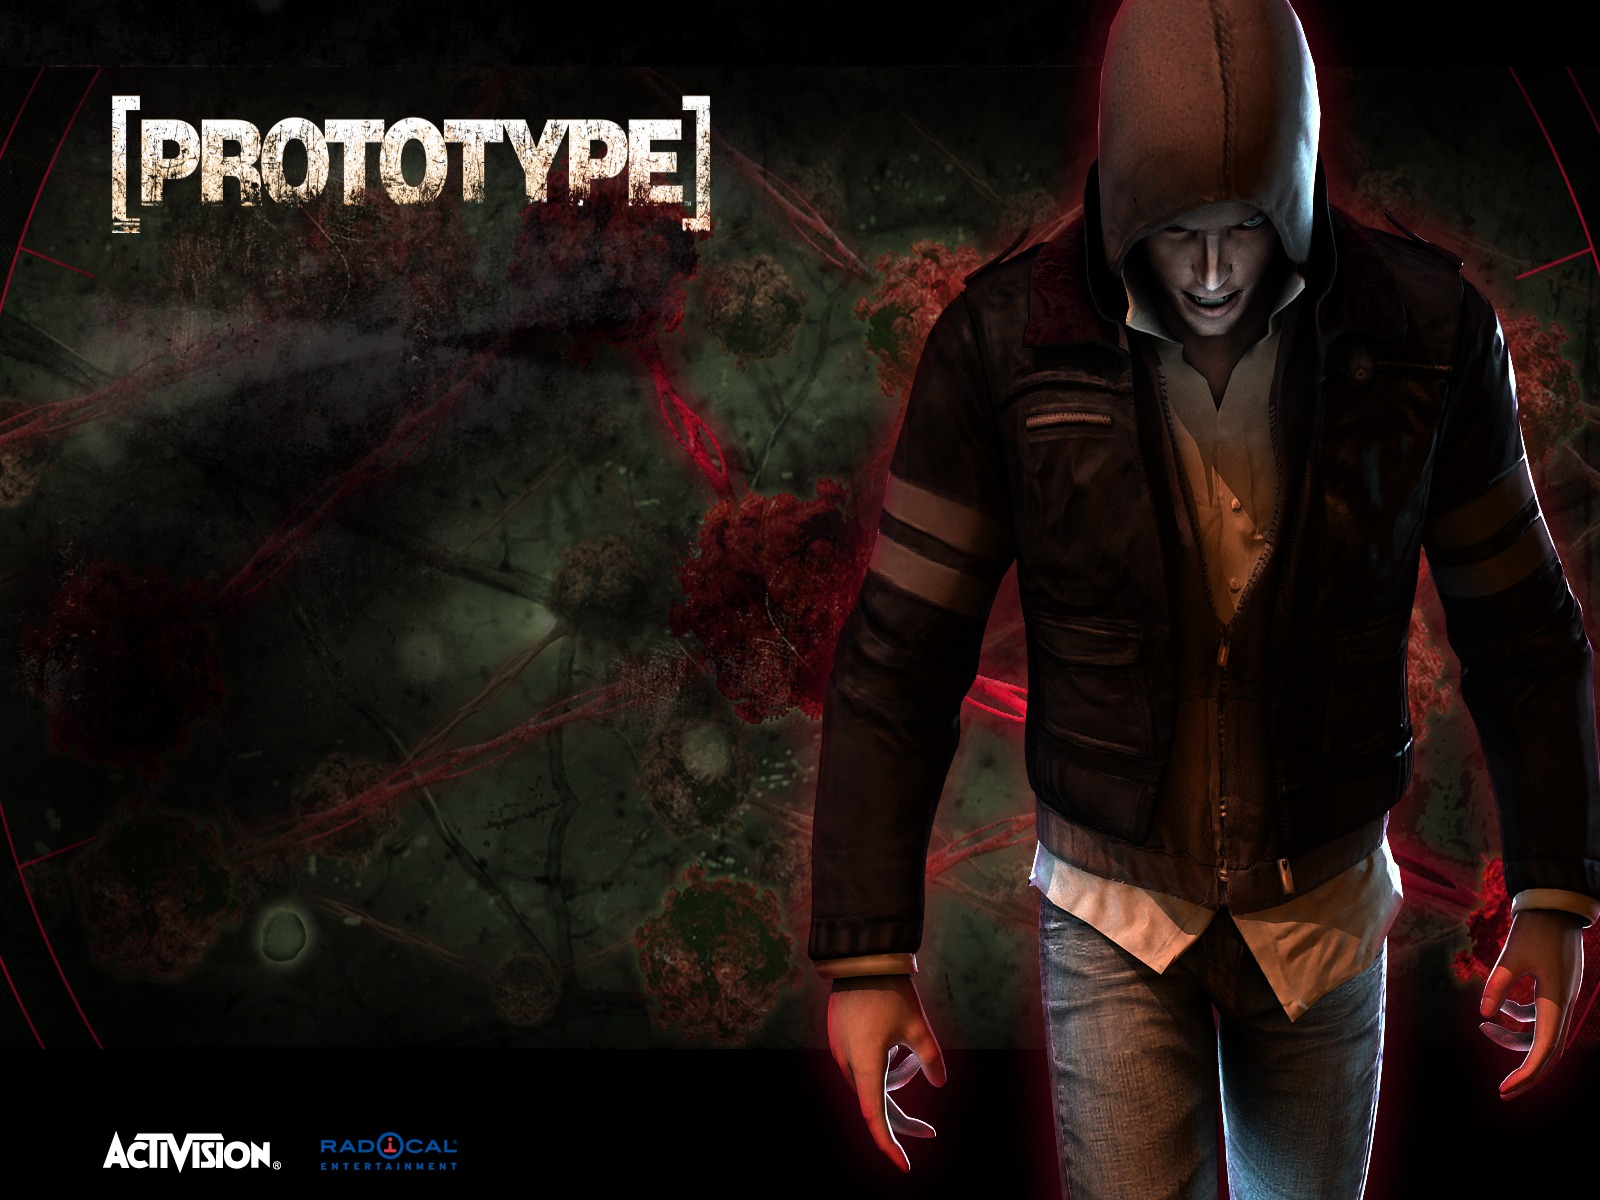 Prototype Wallpaper Other Games Games Wallpapers In Jpg Format For